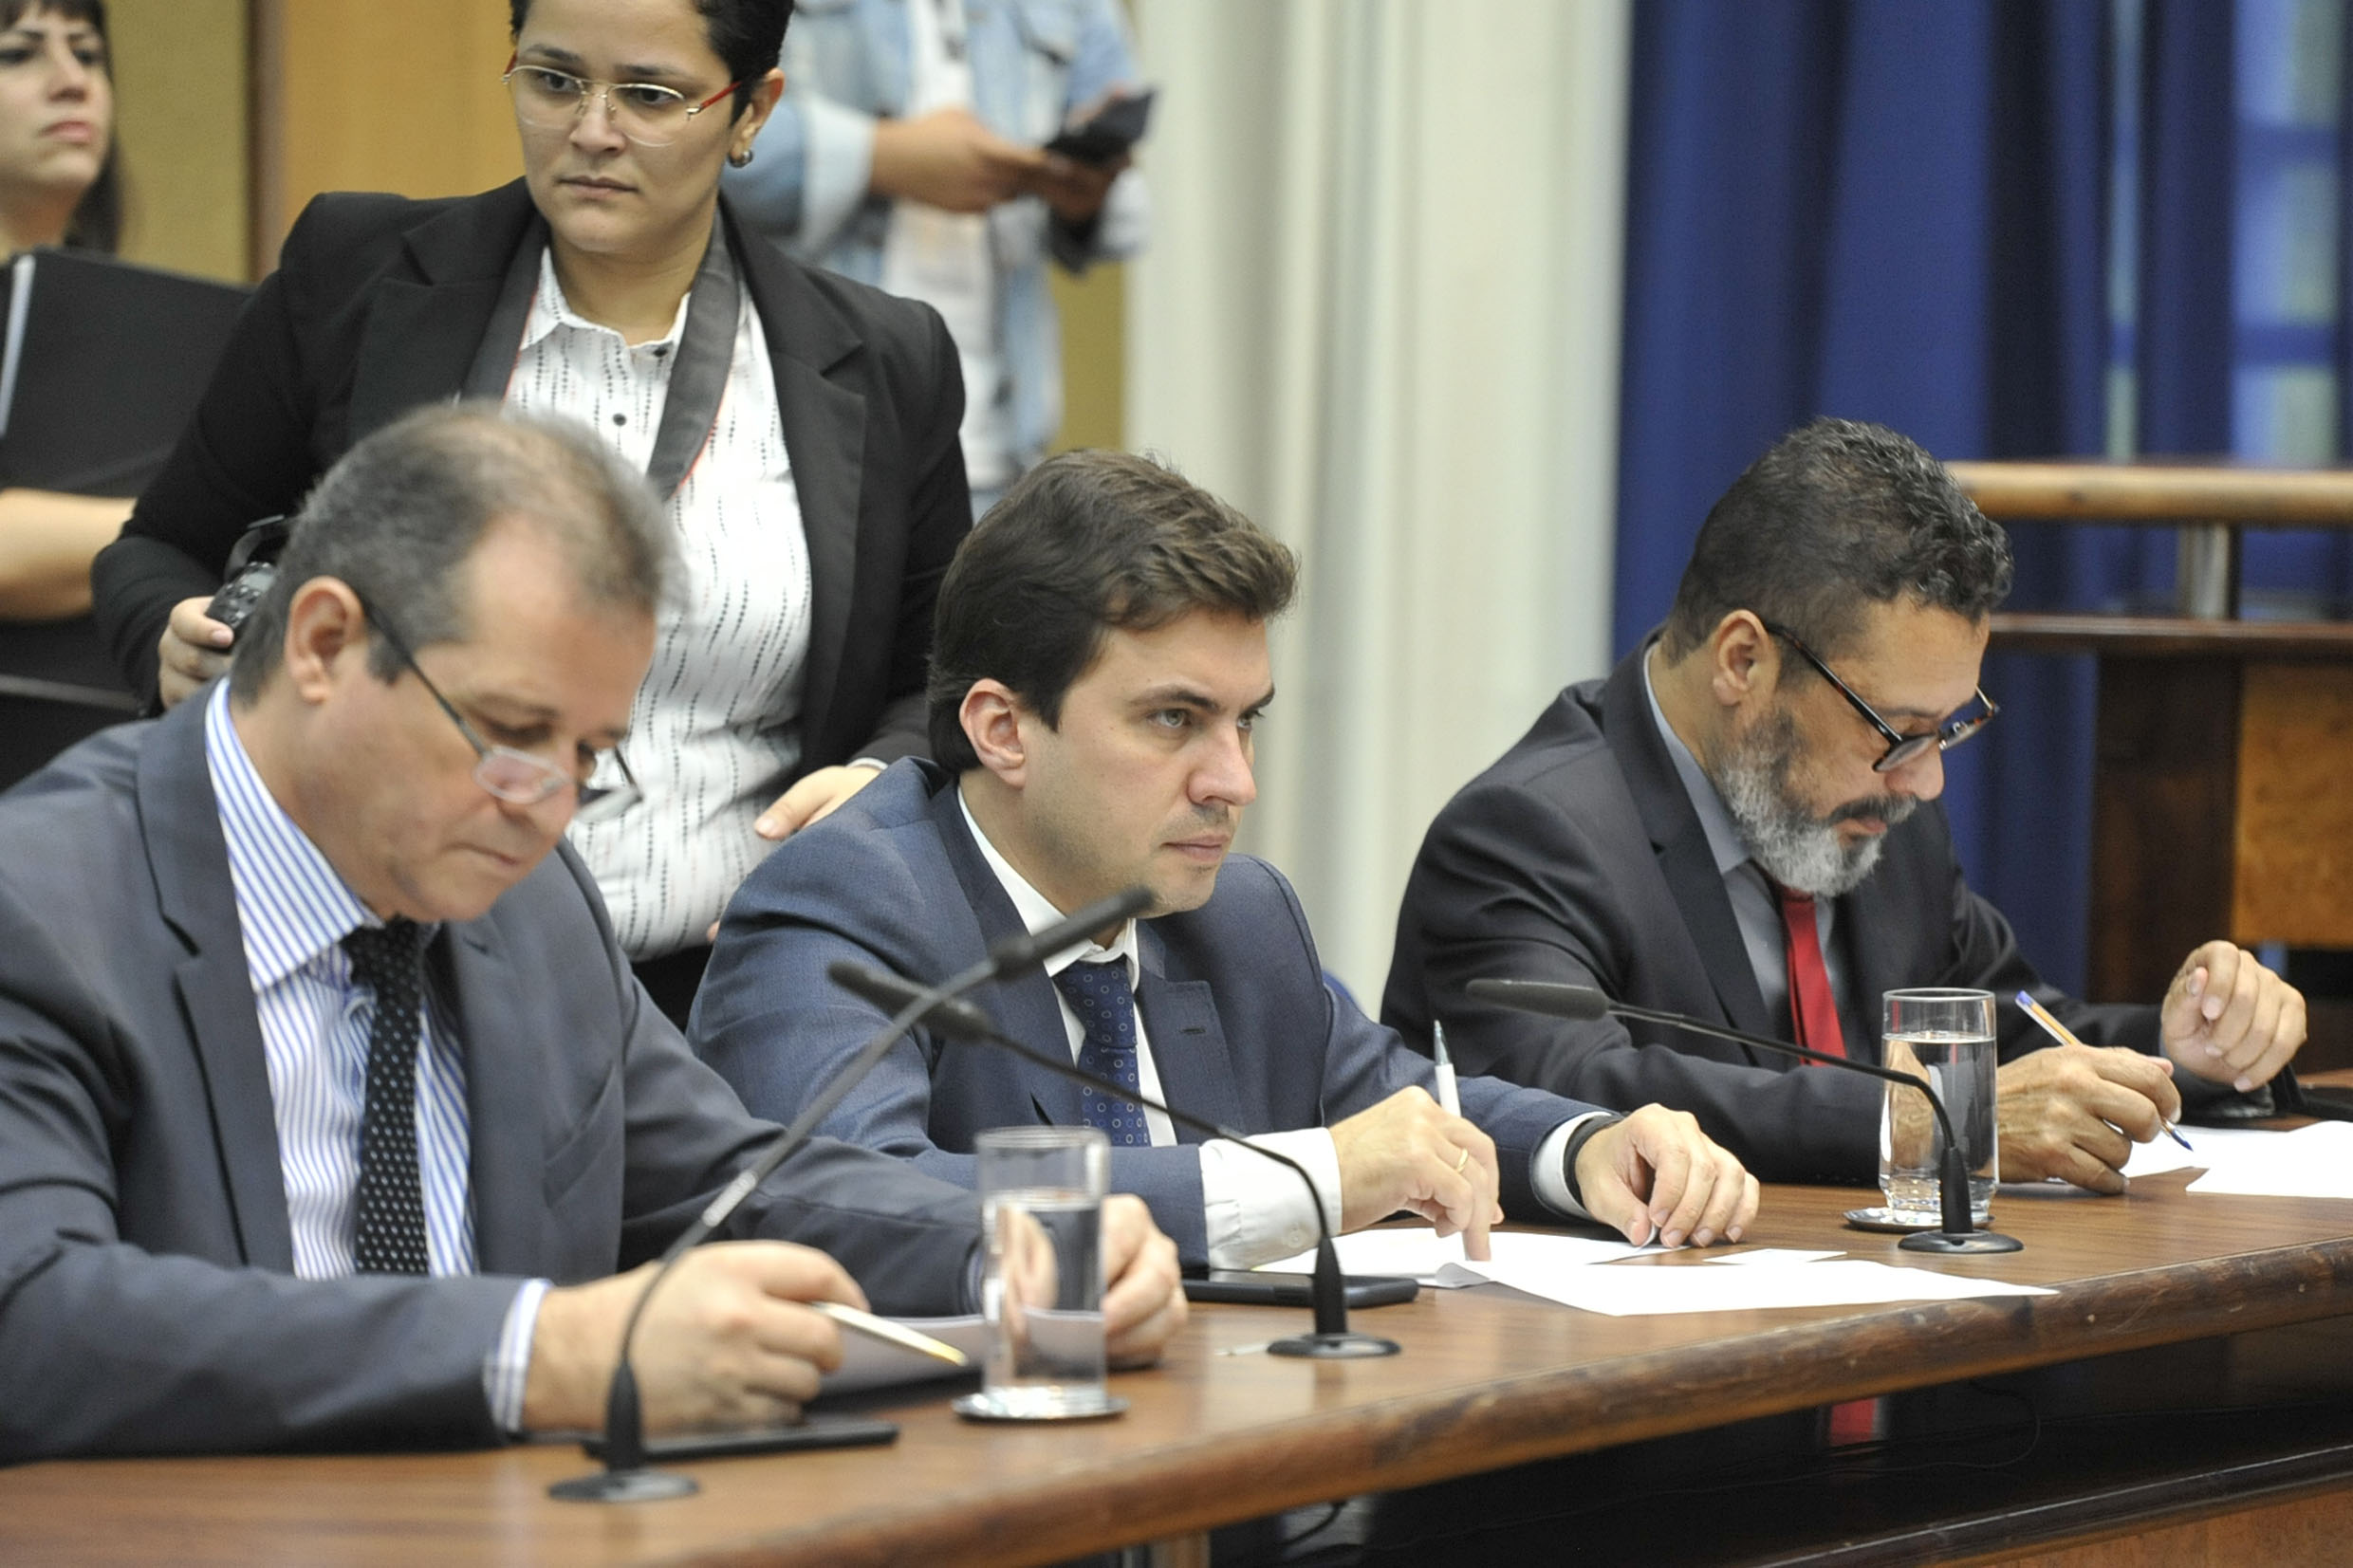 Parlamentares na comissão<a style='float:right' href='https://www3.al.sp.gov.br/repositorio/noticia/N-05-2019/fg234543.jpg' target=_blank><img src='/_img/material-file-download-white.png' width='14px' alt='Clique para baixar a imagem'></a>